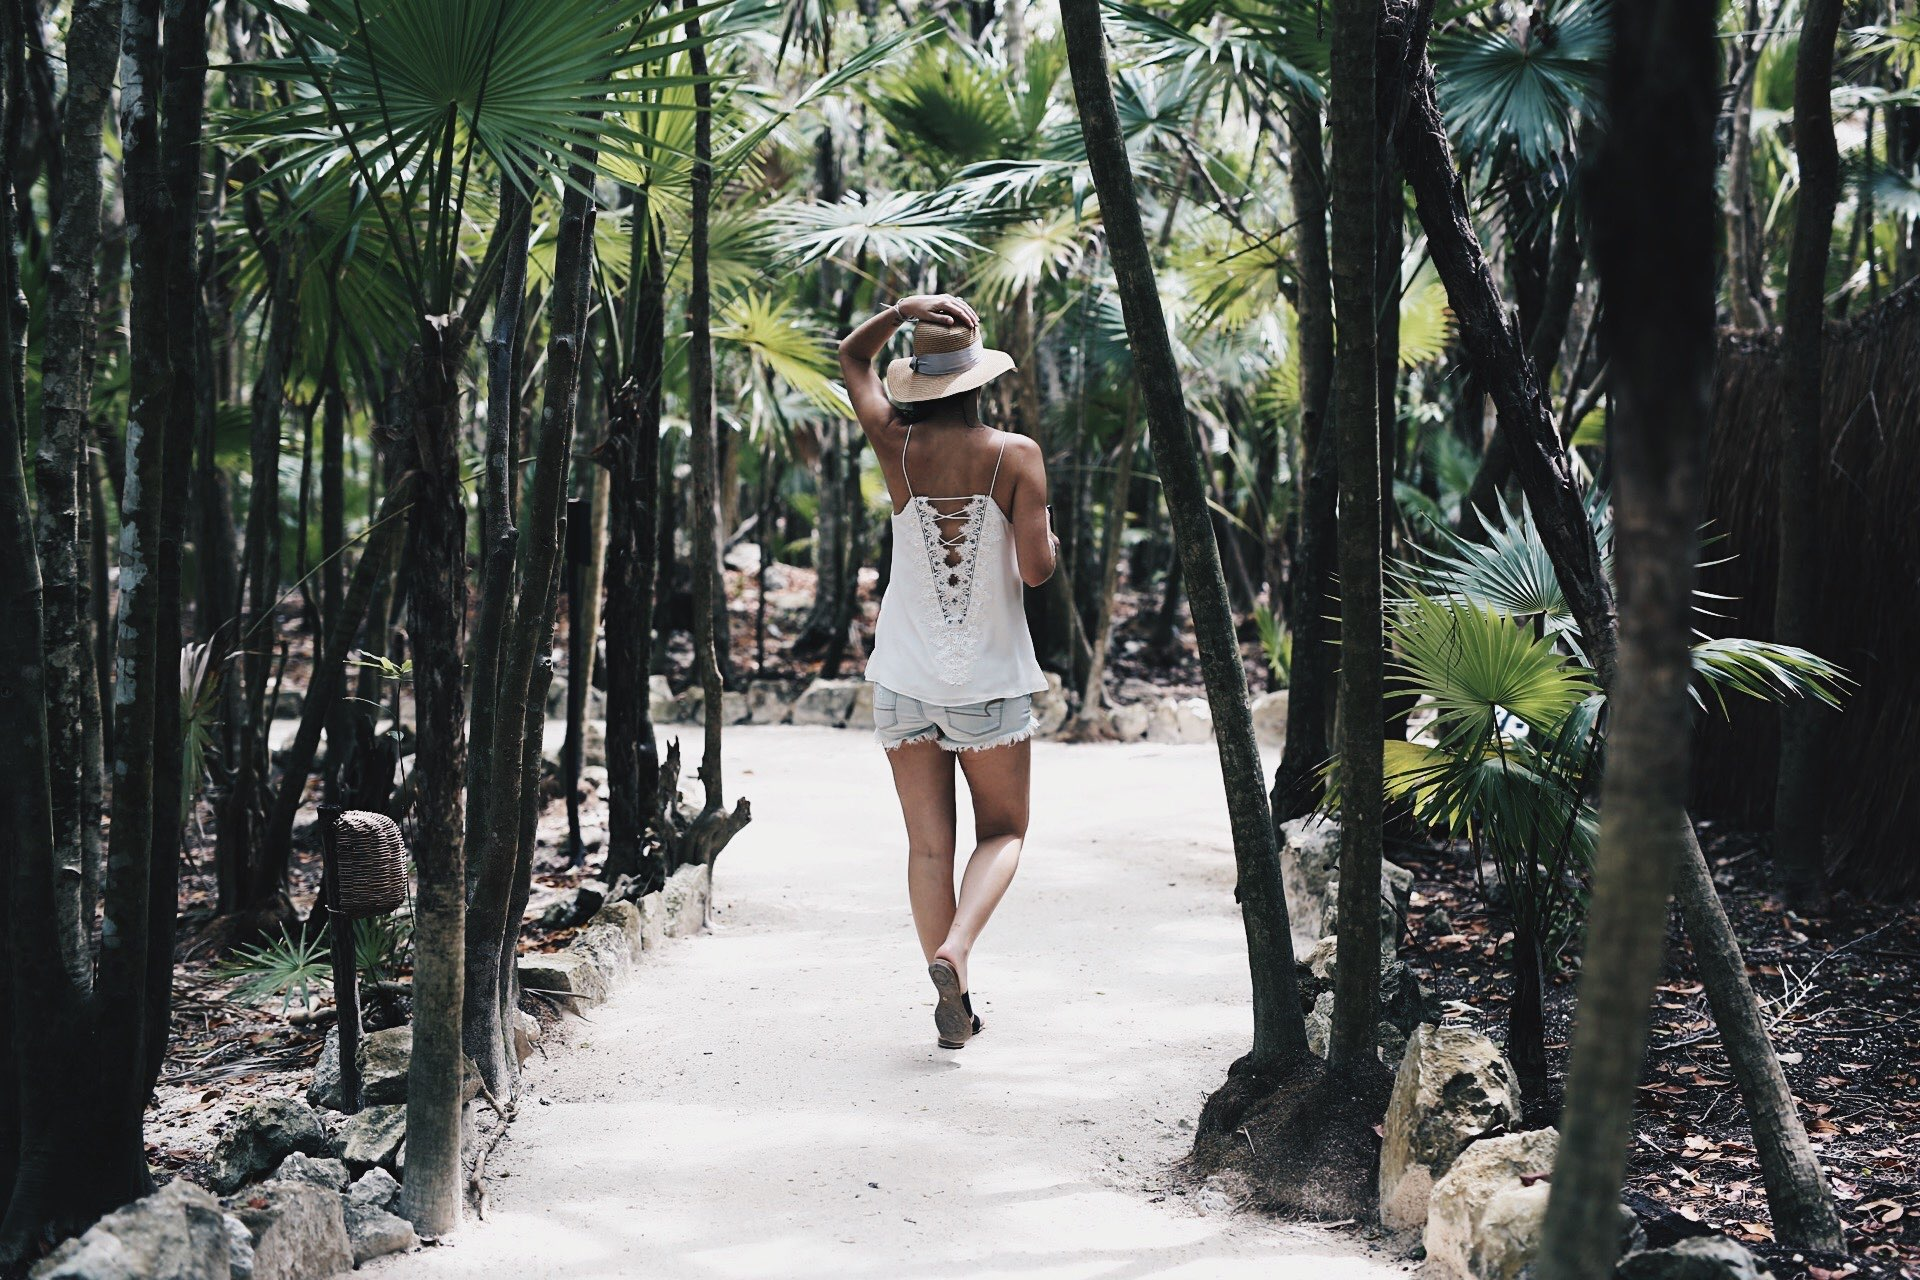 The Ultimate Tulum Travel Guide